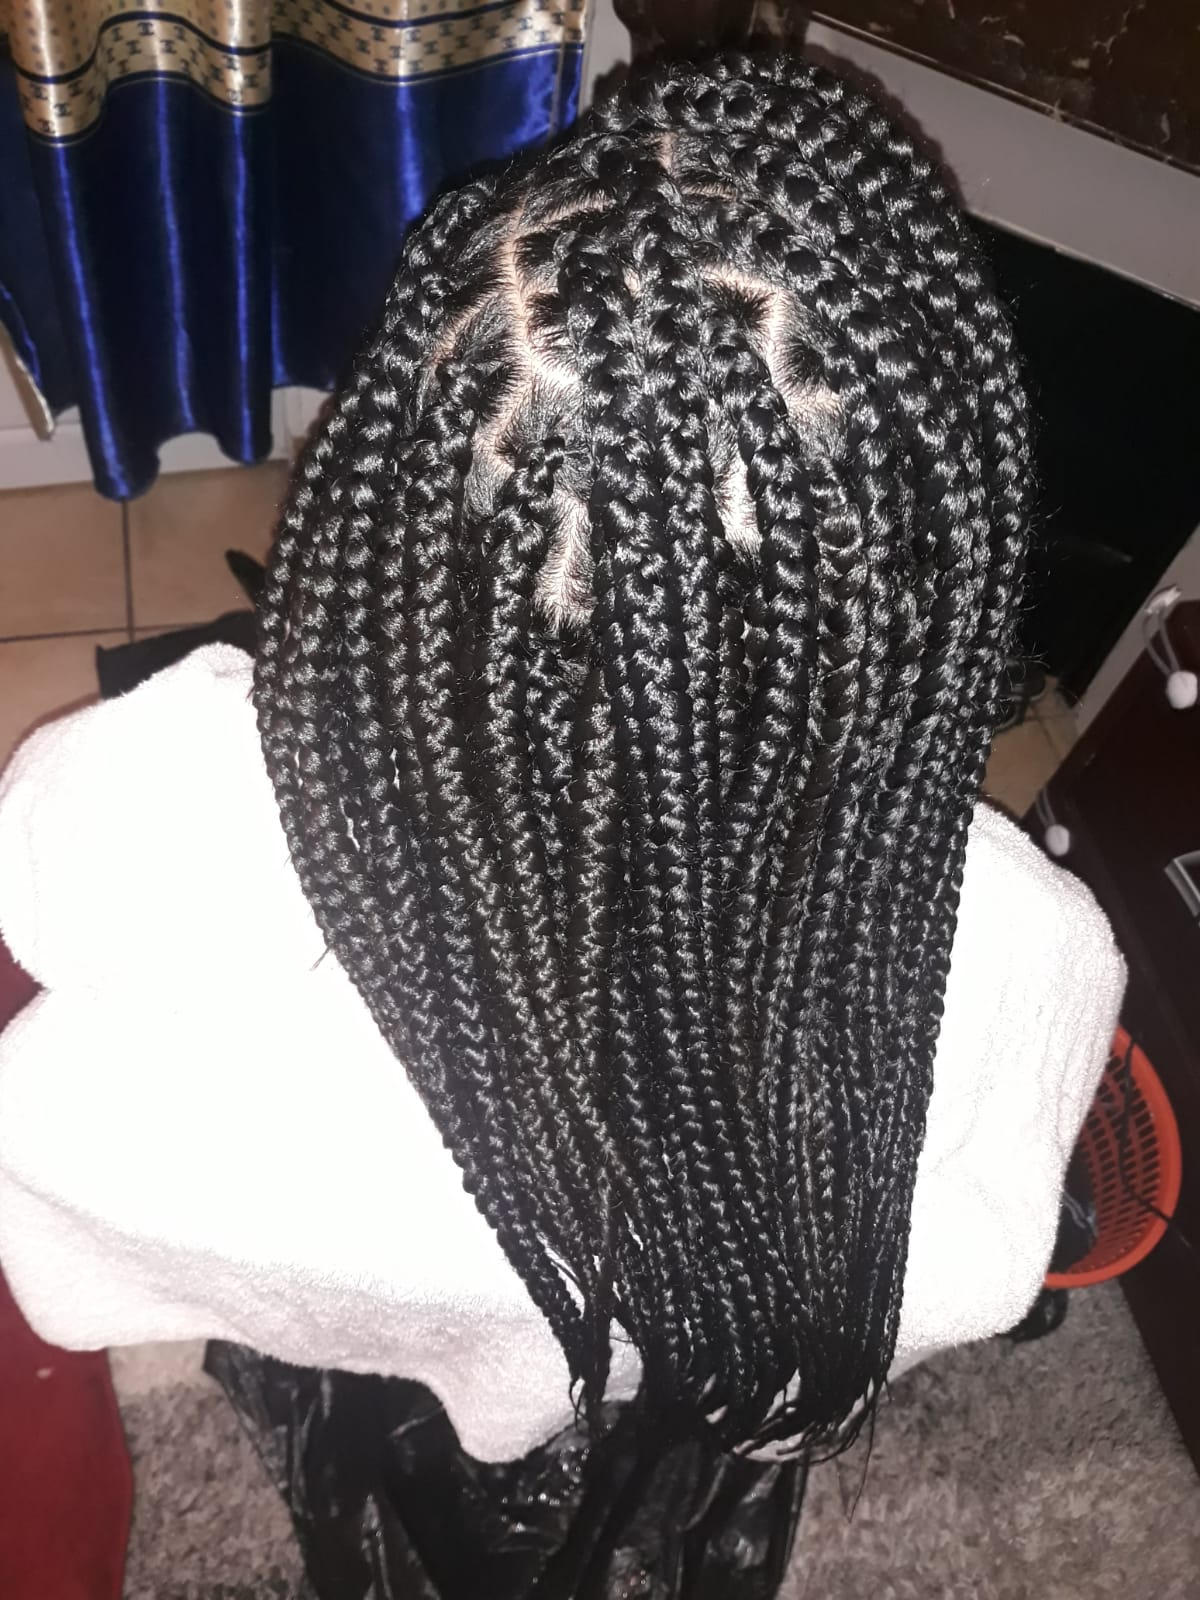 salon de coiffure afro tresse tresses box braids crochet braids vanilles tissages paris 75 77 78 91 92 93 94 95 ROVTXNFV